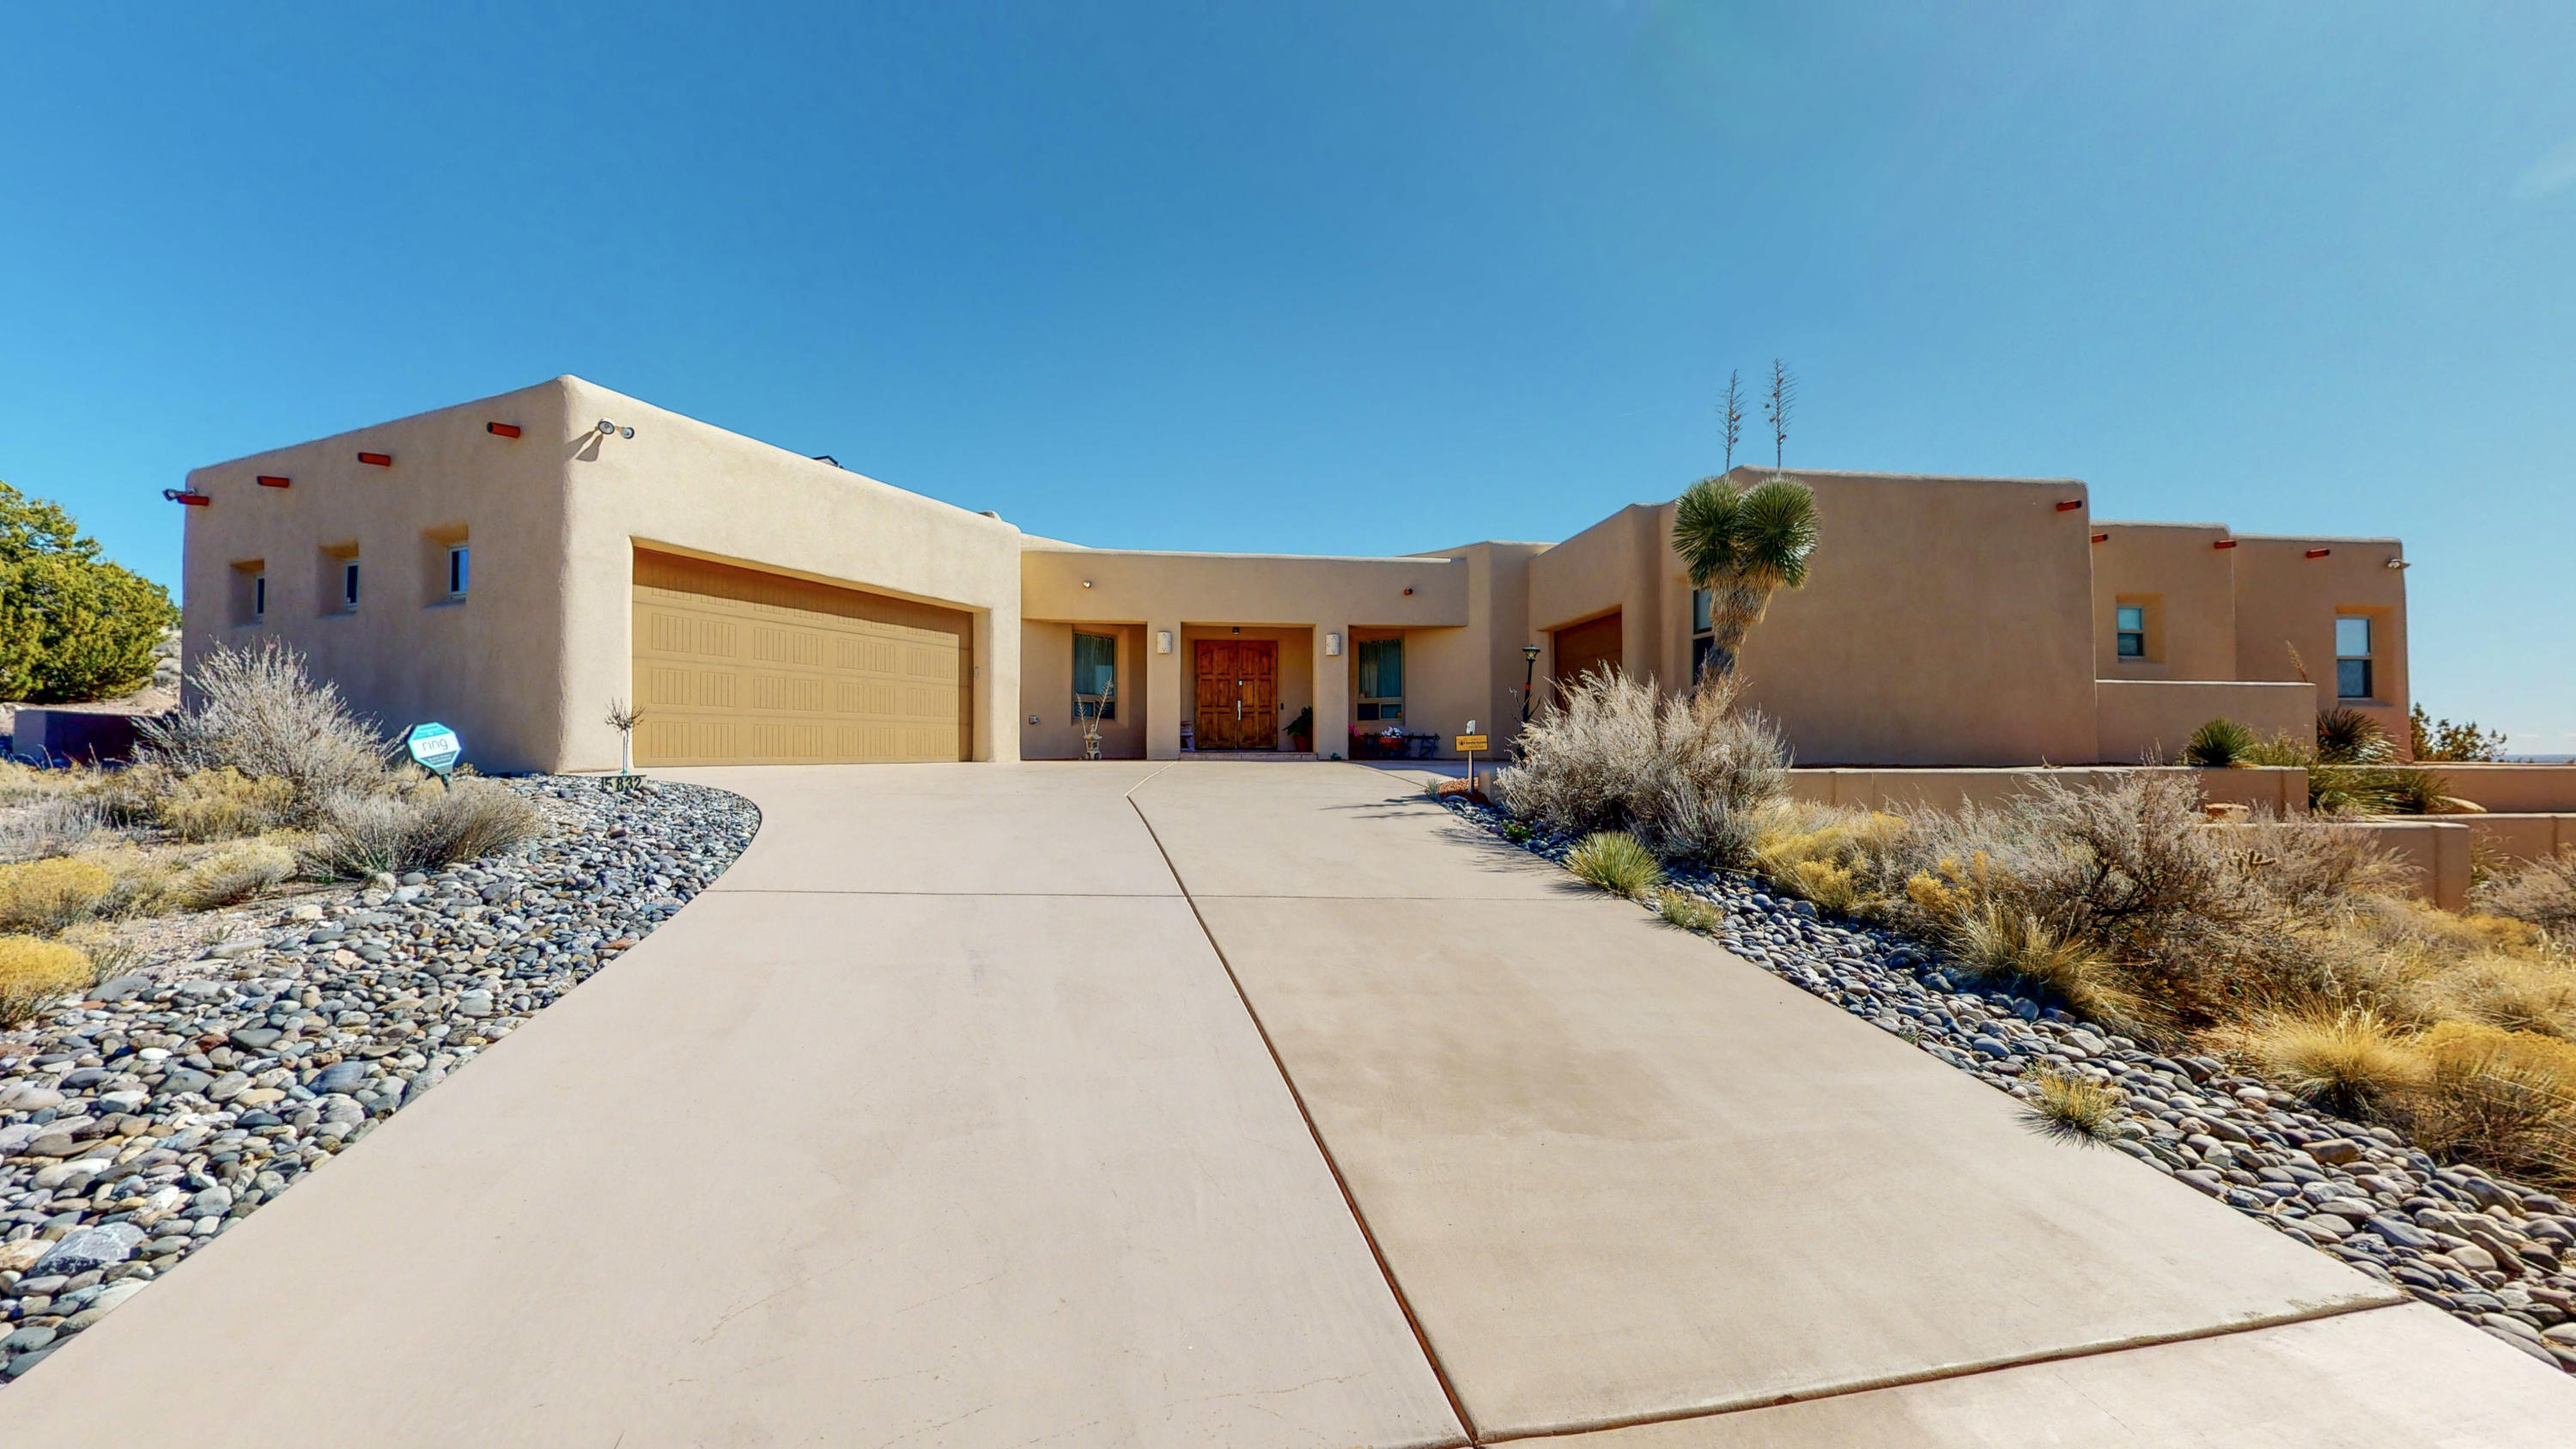 Beautiful custom home in Ridgeline Estates, Mariposa.  Endless amenities including radiant heat, 2 furnaces, Thermidor gas self cleaning double ovens, a steamer oven, 2 fridge drawers in the kitchen (separate from the full fridge/freezer in the pantry), 2 dishwasher drawers in the kitchen.    The master suite features 2 fireplaces, (one in the bedroom and another in the bathroom), soaking tub, shower, sauna (only 8 months old)  and two walk in closets.  The gorgeous backyard includes a kiva style fireplace and panoramic views. The  amenities in Mariposa include an indoor and outdoor pool, clubhouse and spa.  The solar panels are owned outright (not leased) and convey with the home.  This is a one of a kind dream home of exceptional quality and value.